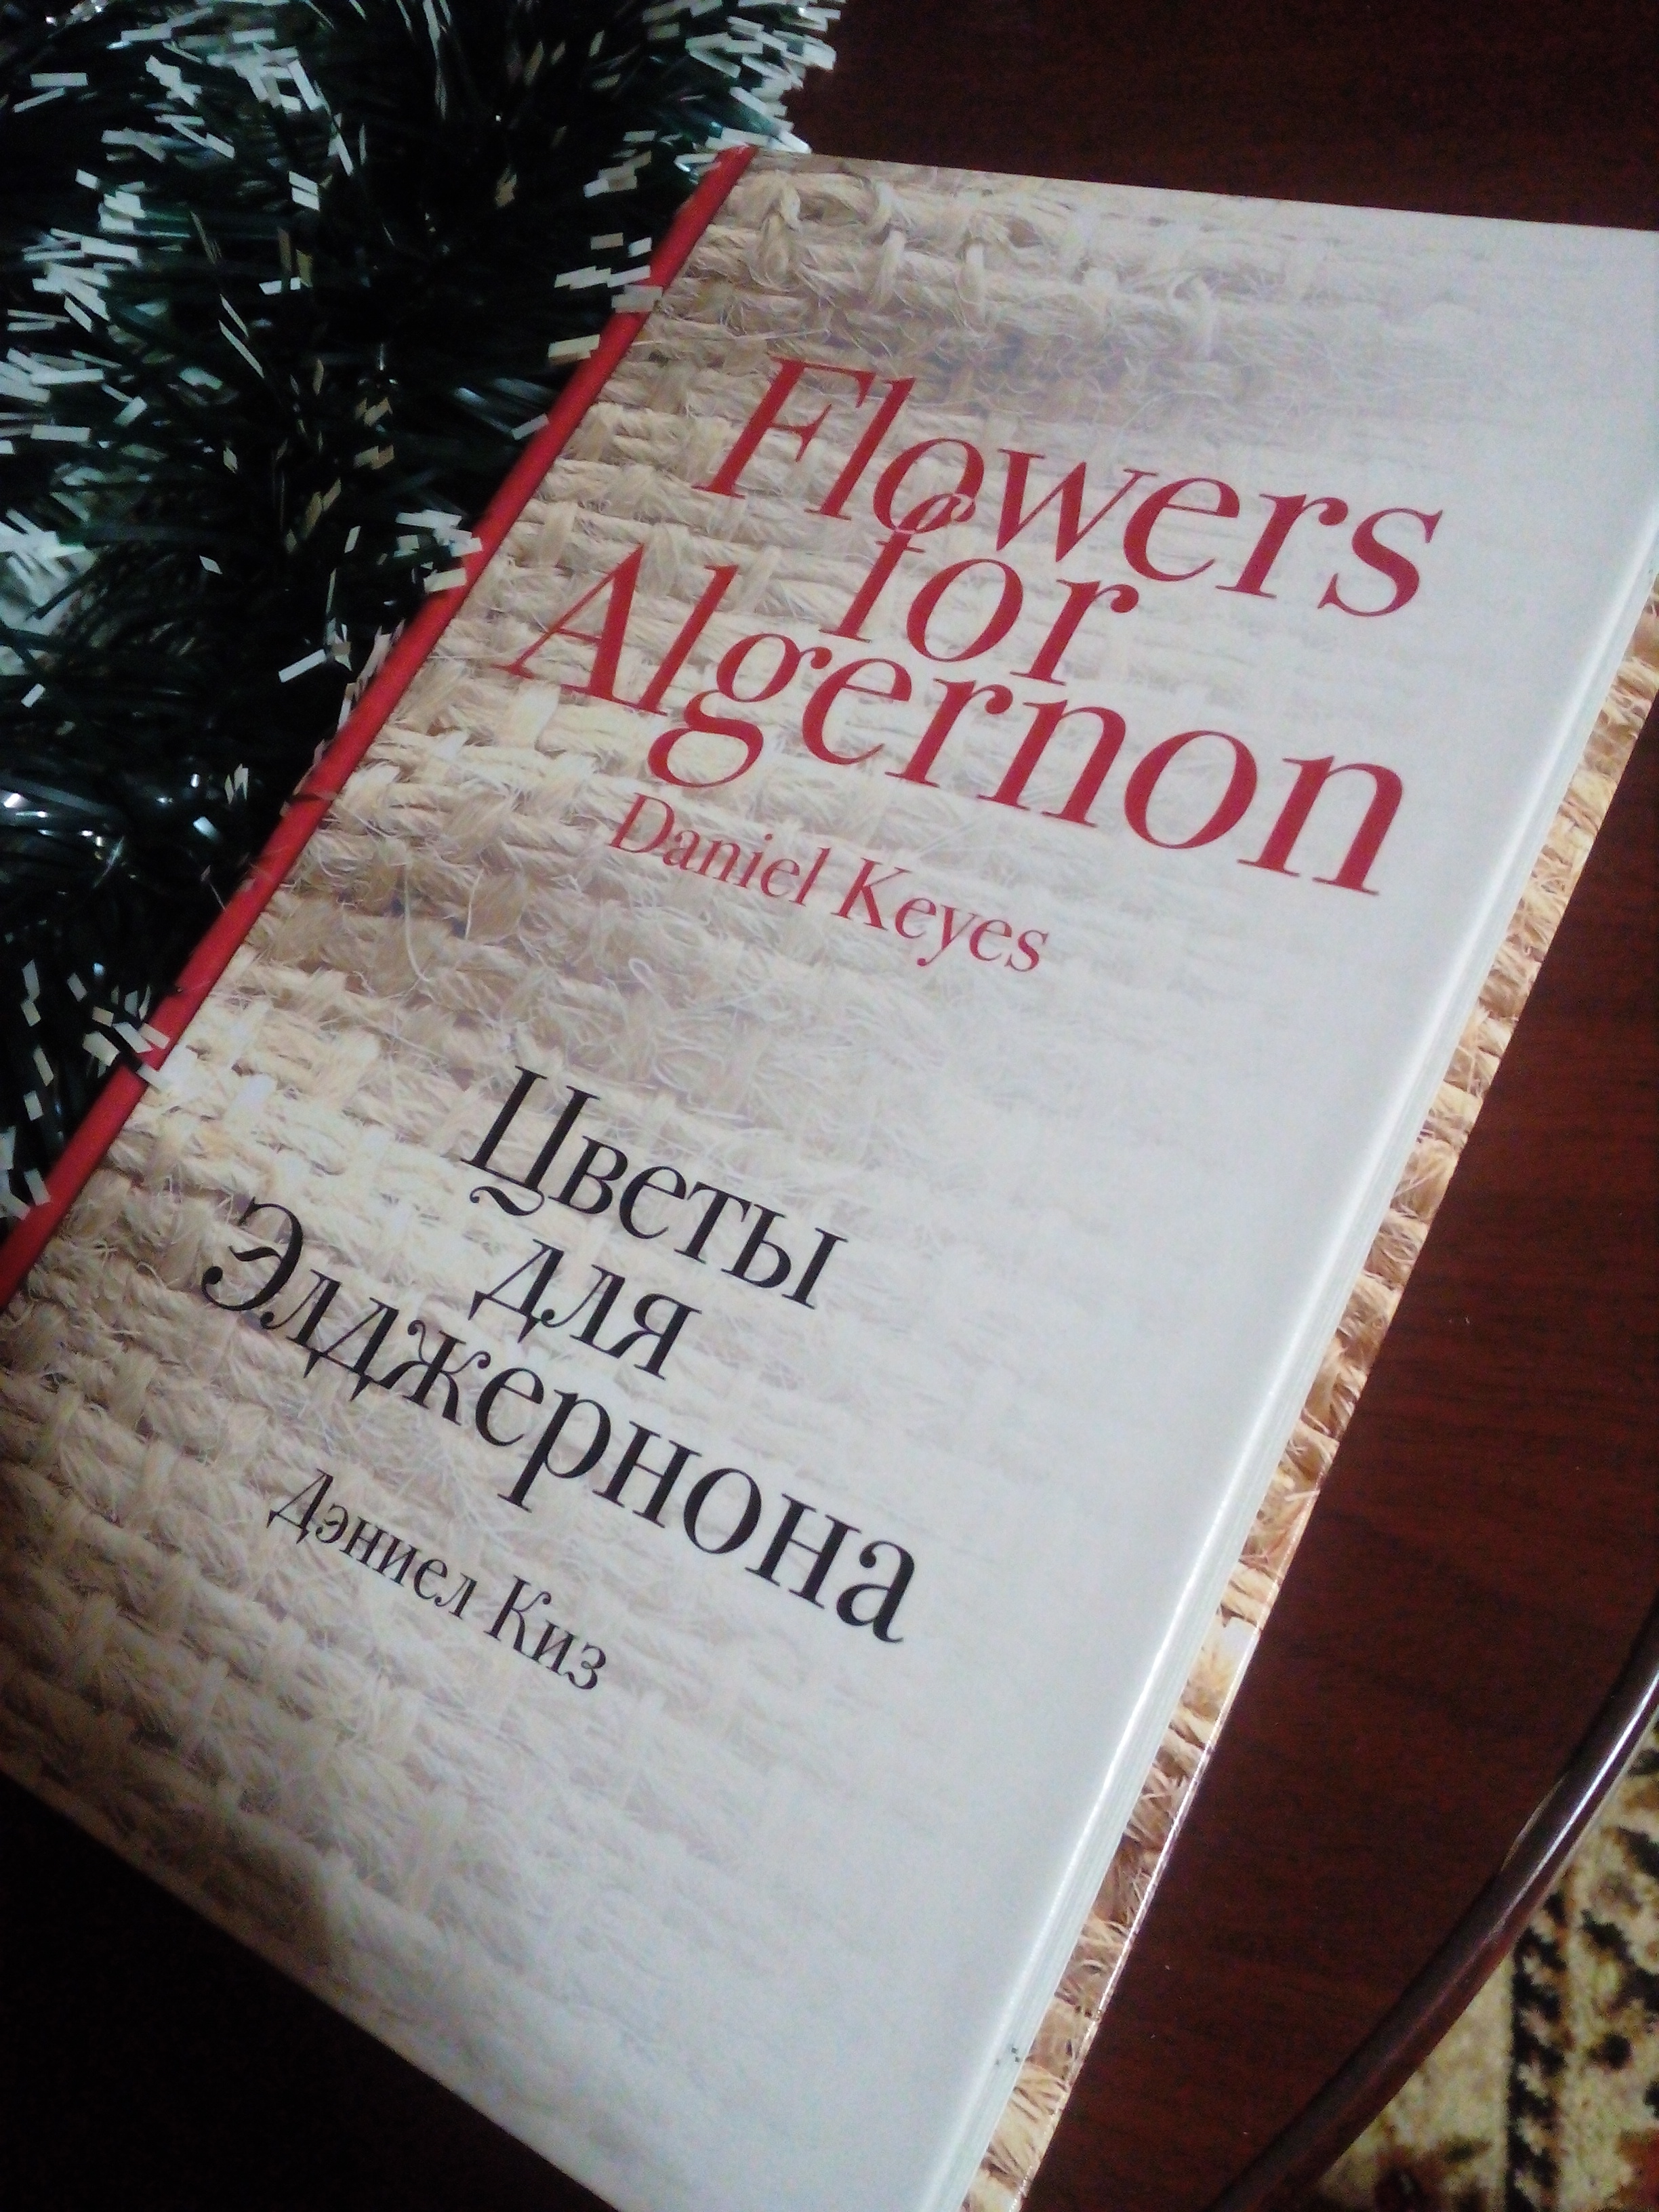 flowers for algernon literary analysis e q Flowers for algernon cla standards literary response and analysis 33 analyze interactions between main and subordinate.